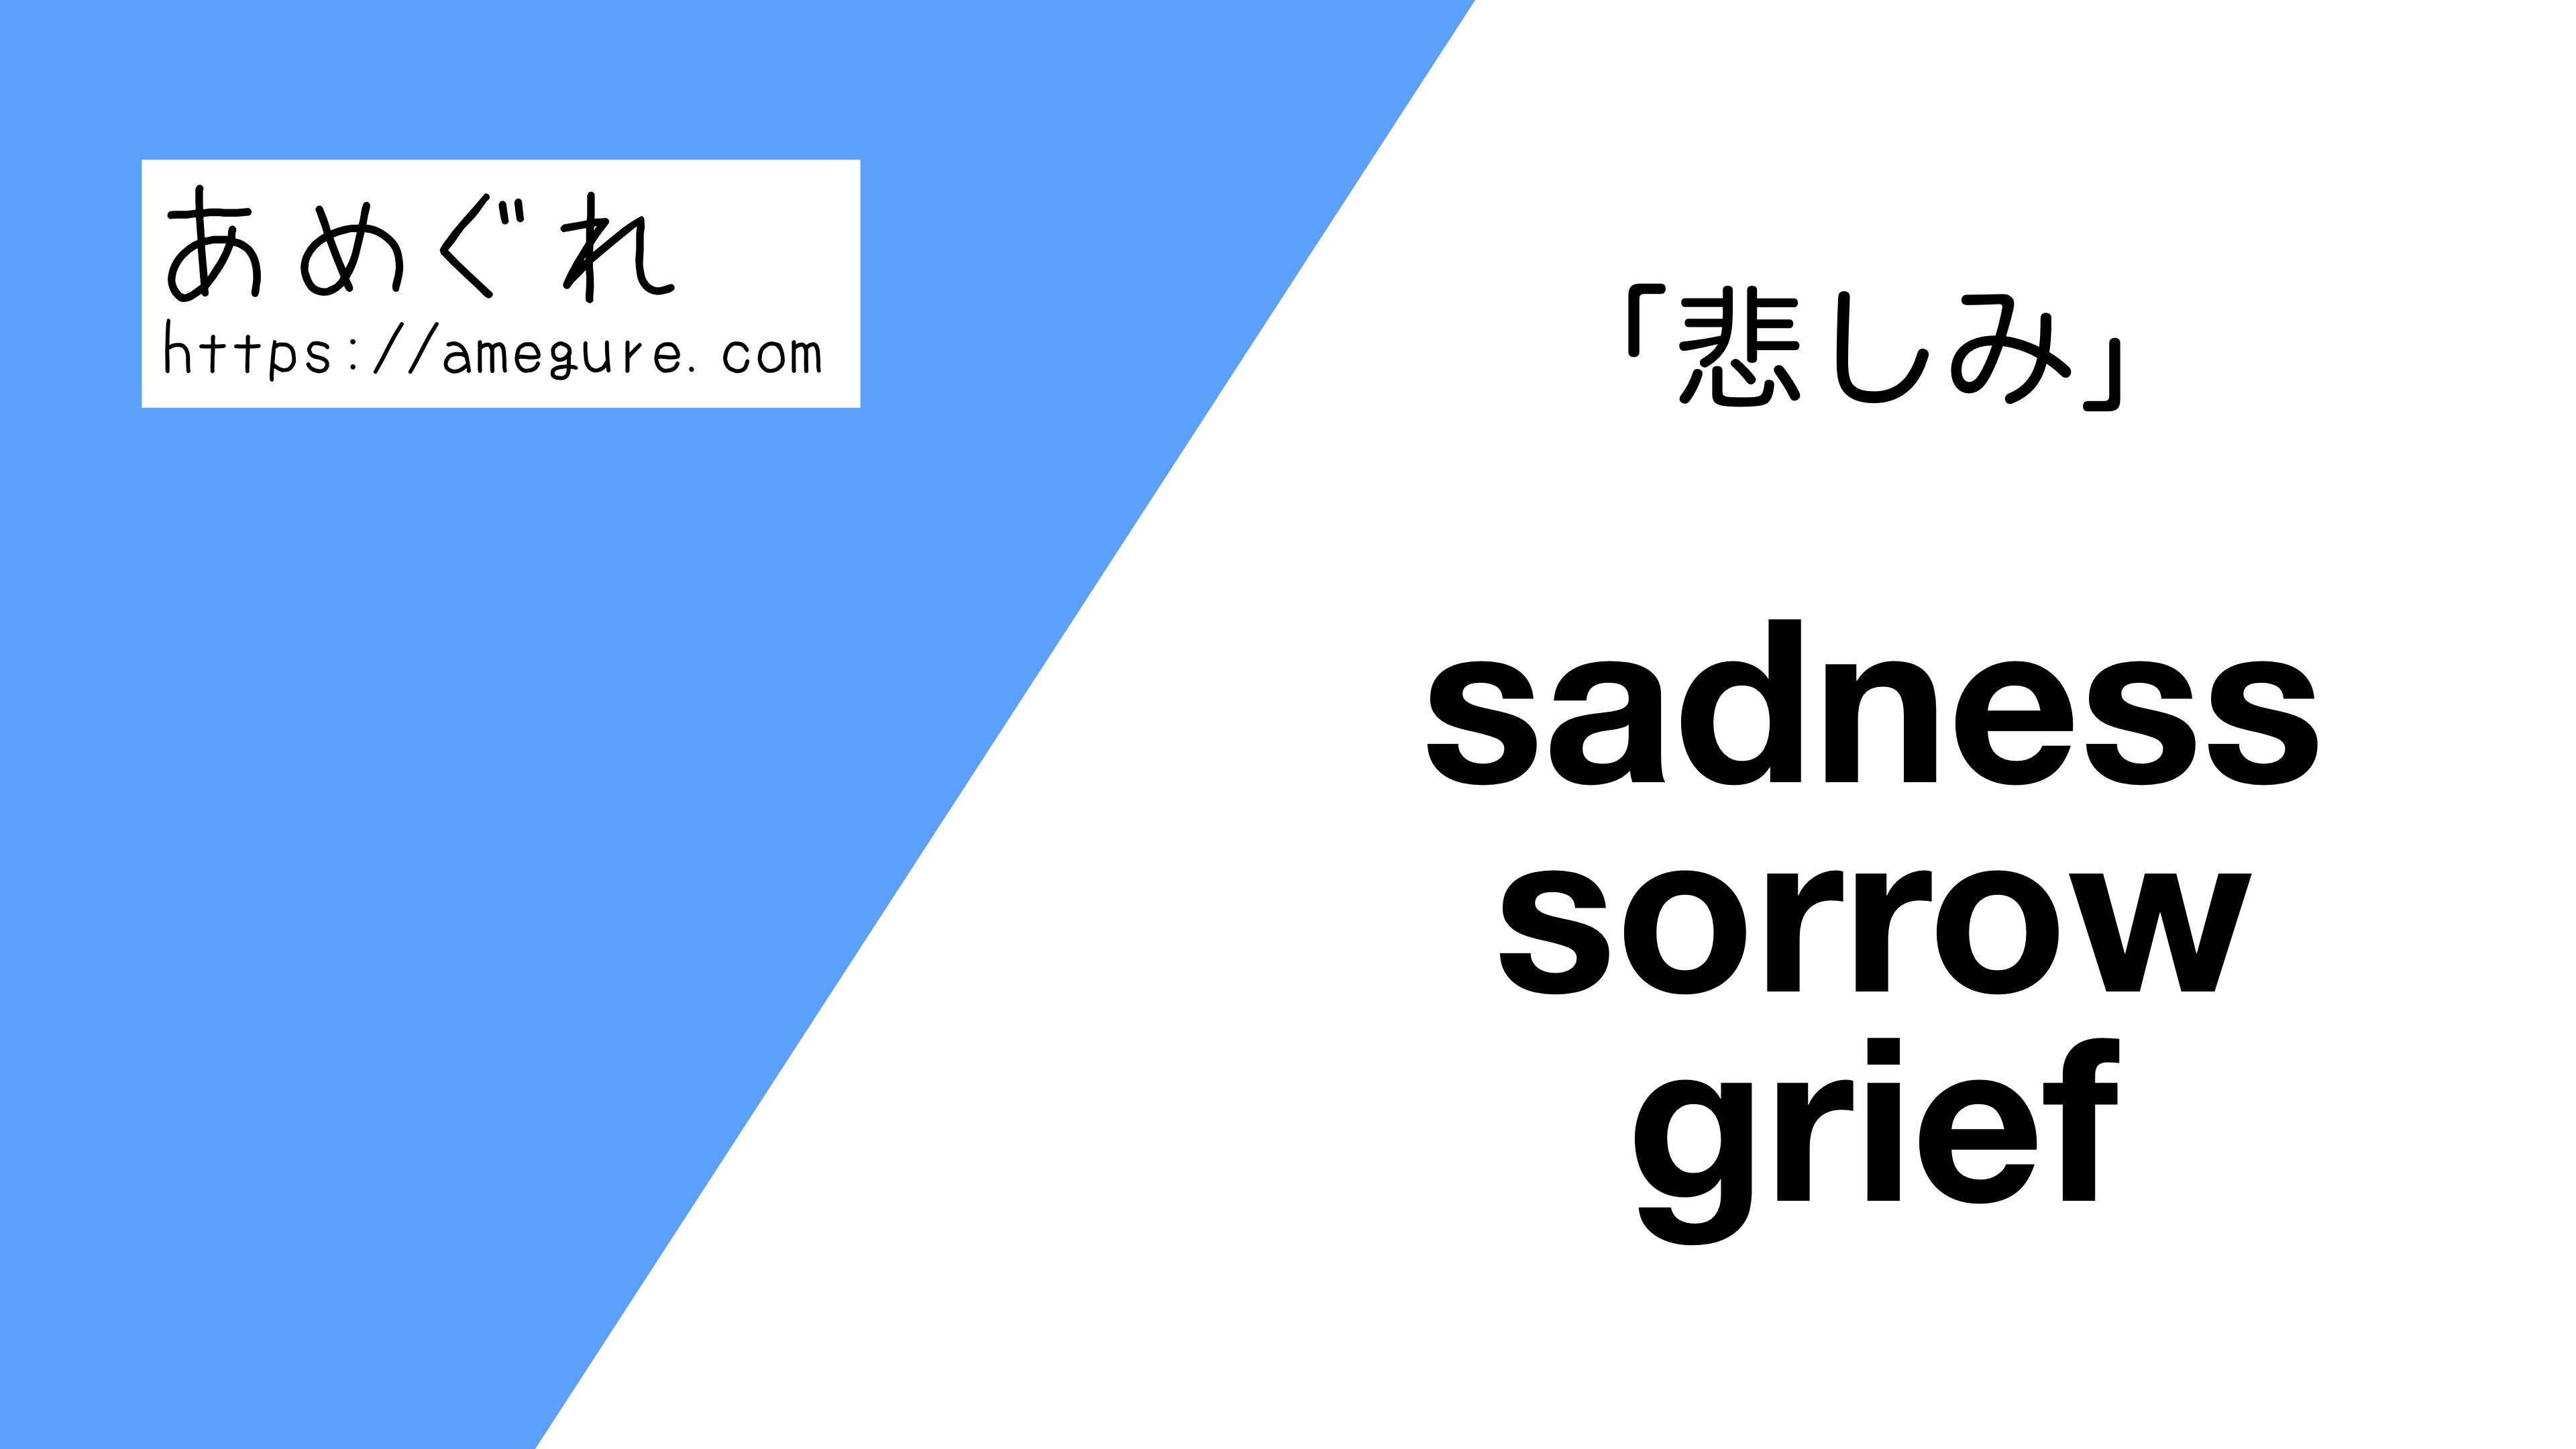 sadness-sorrow-grief違い